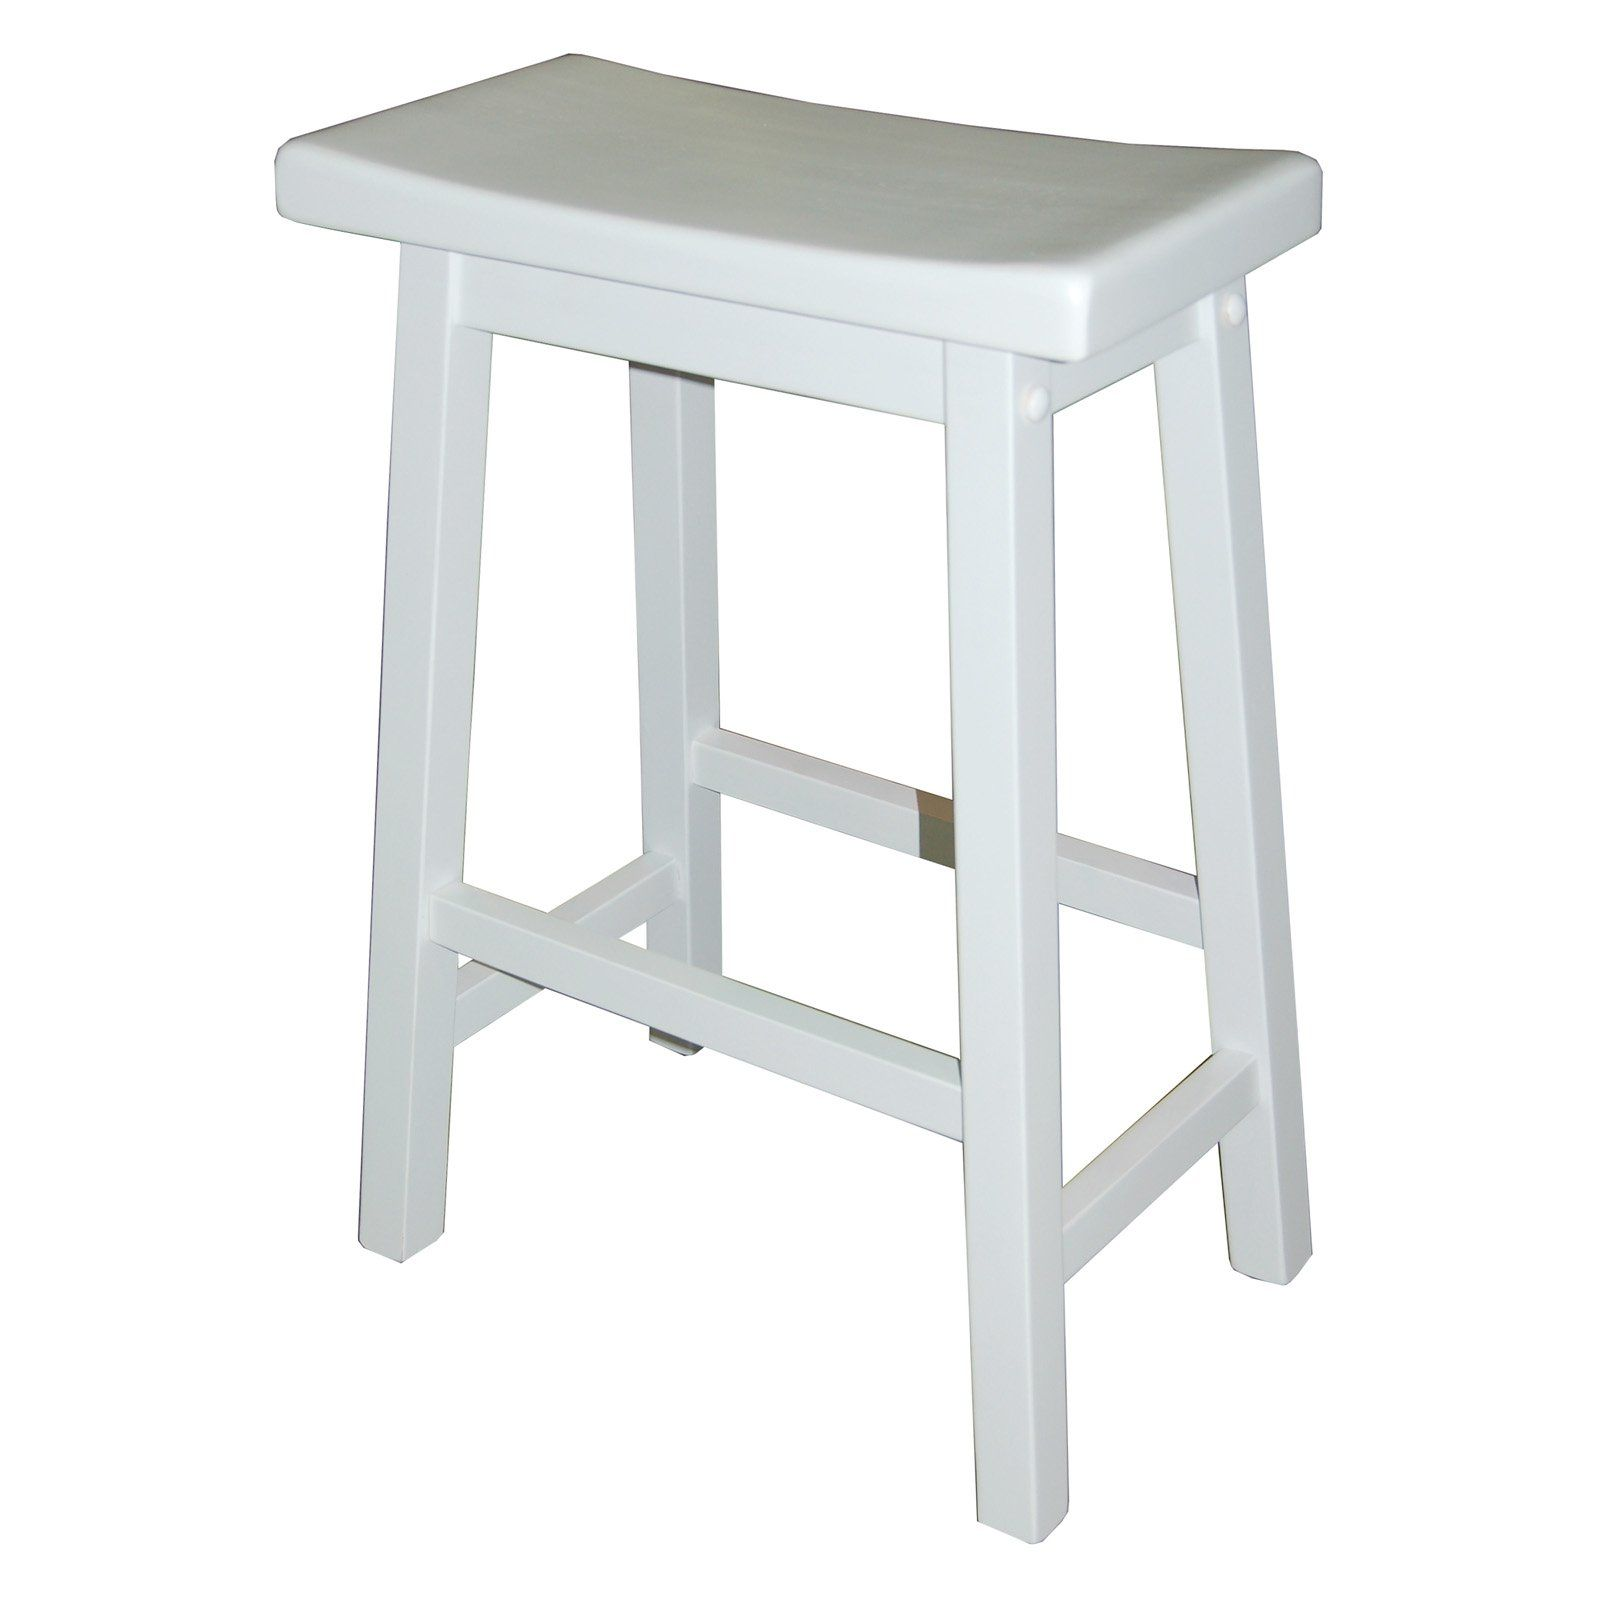 TMS 24 in. Arizona Saddle Counter Stool - Ensure your kitchen counter is outfitted with comfortable seats thanks to the TMS 24 in. Arizona Saddle Counter Stool. This counter-height stool is su...